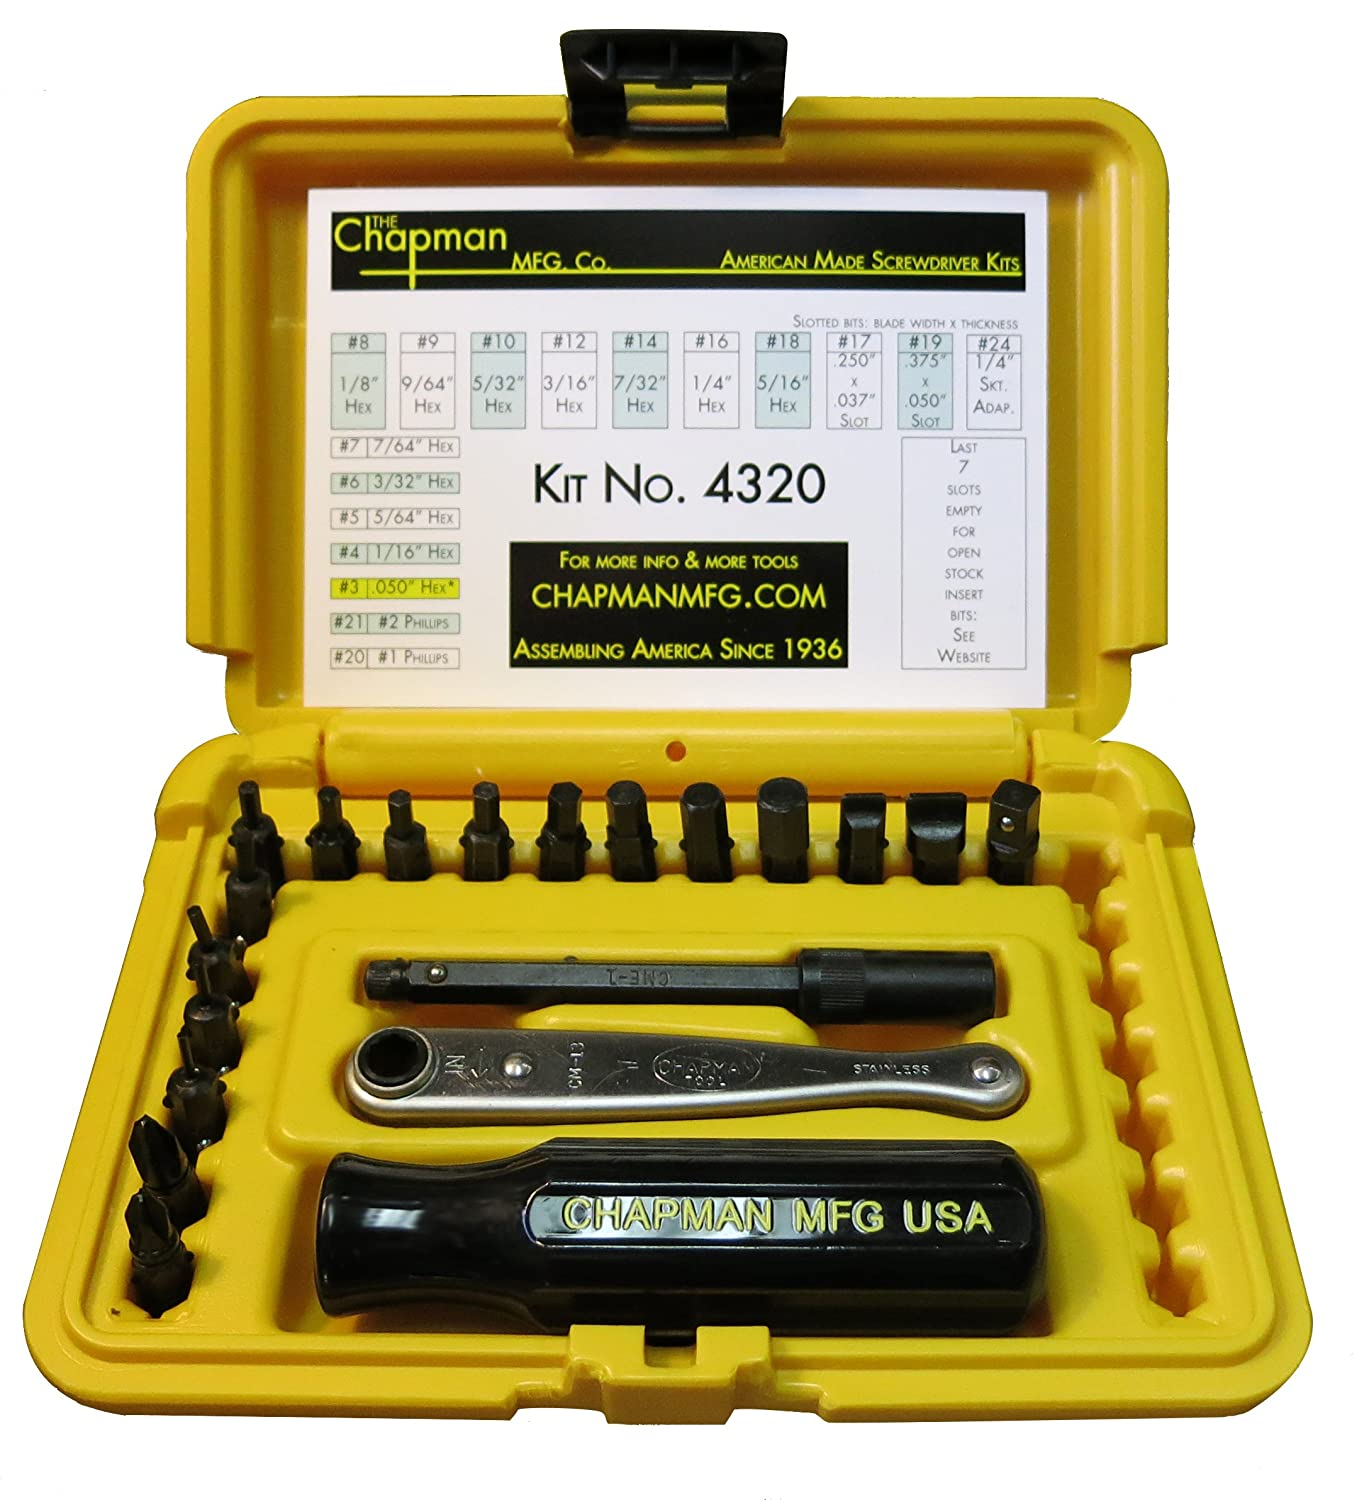 SAE /& Metric Hex Bits Metric Complete Set Offers 51 Insert Bits for Torx Screws 300+ Combinations Slotted Includes Phillips Chapman MFG 5575 Master Screwdriver Set 56 Pieces Star Bits